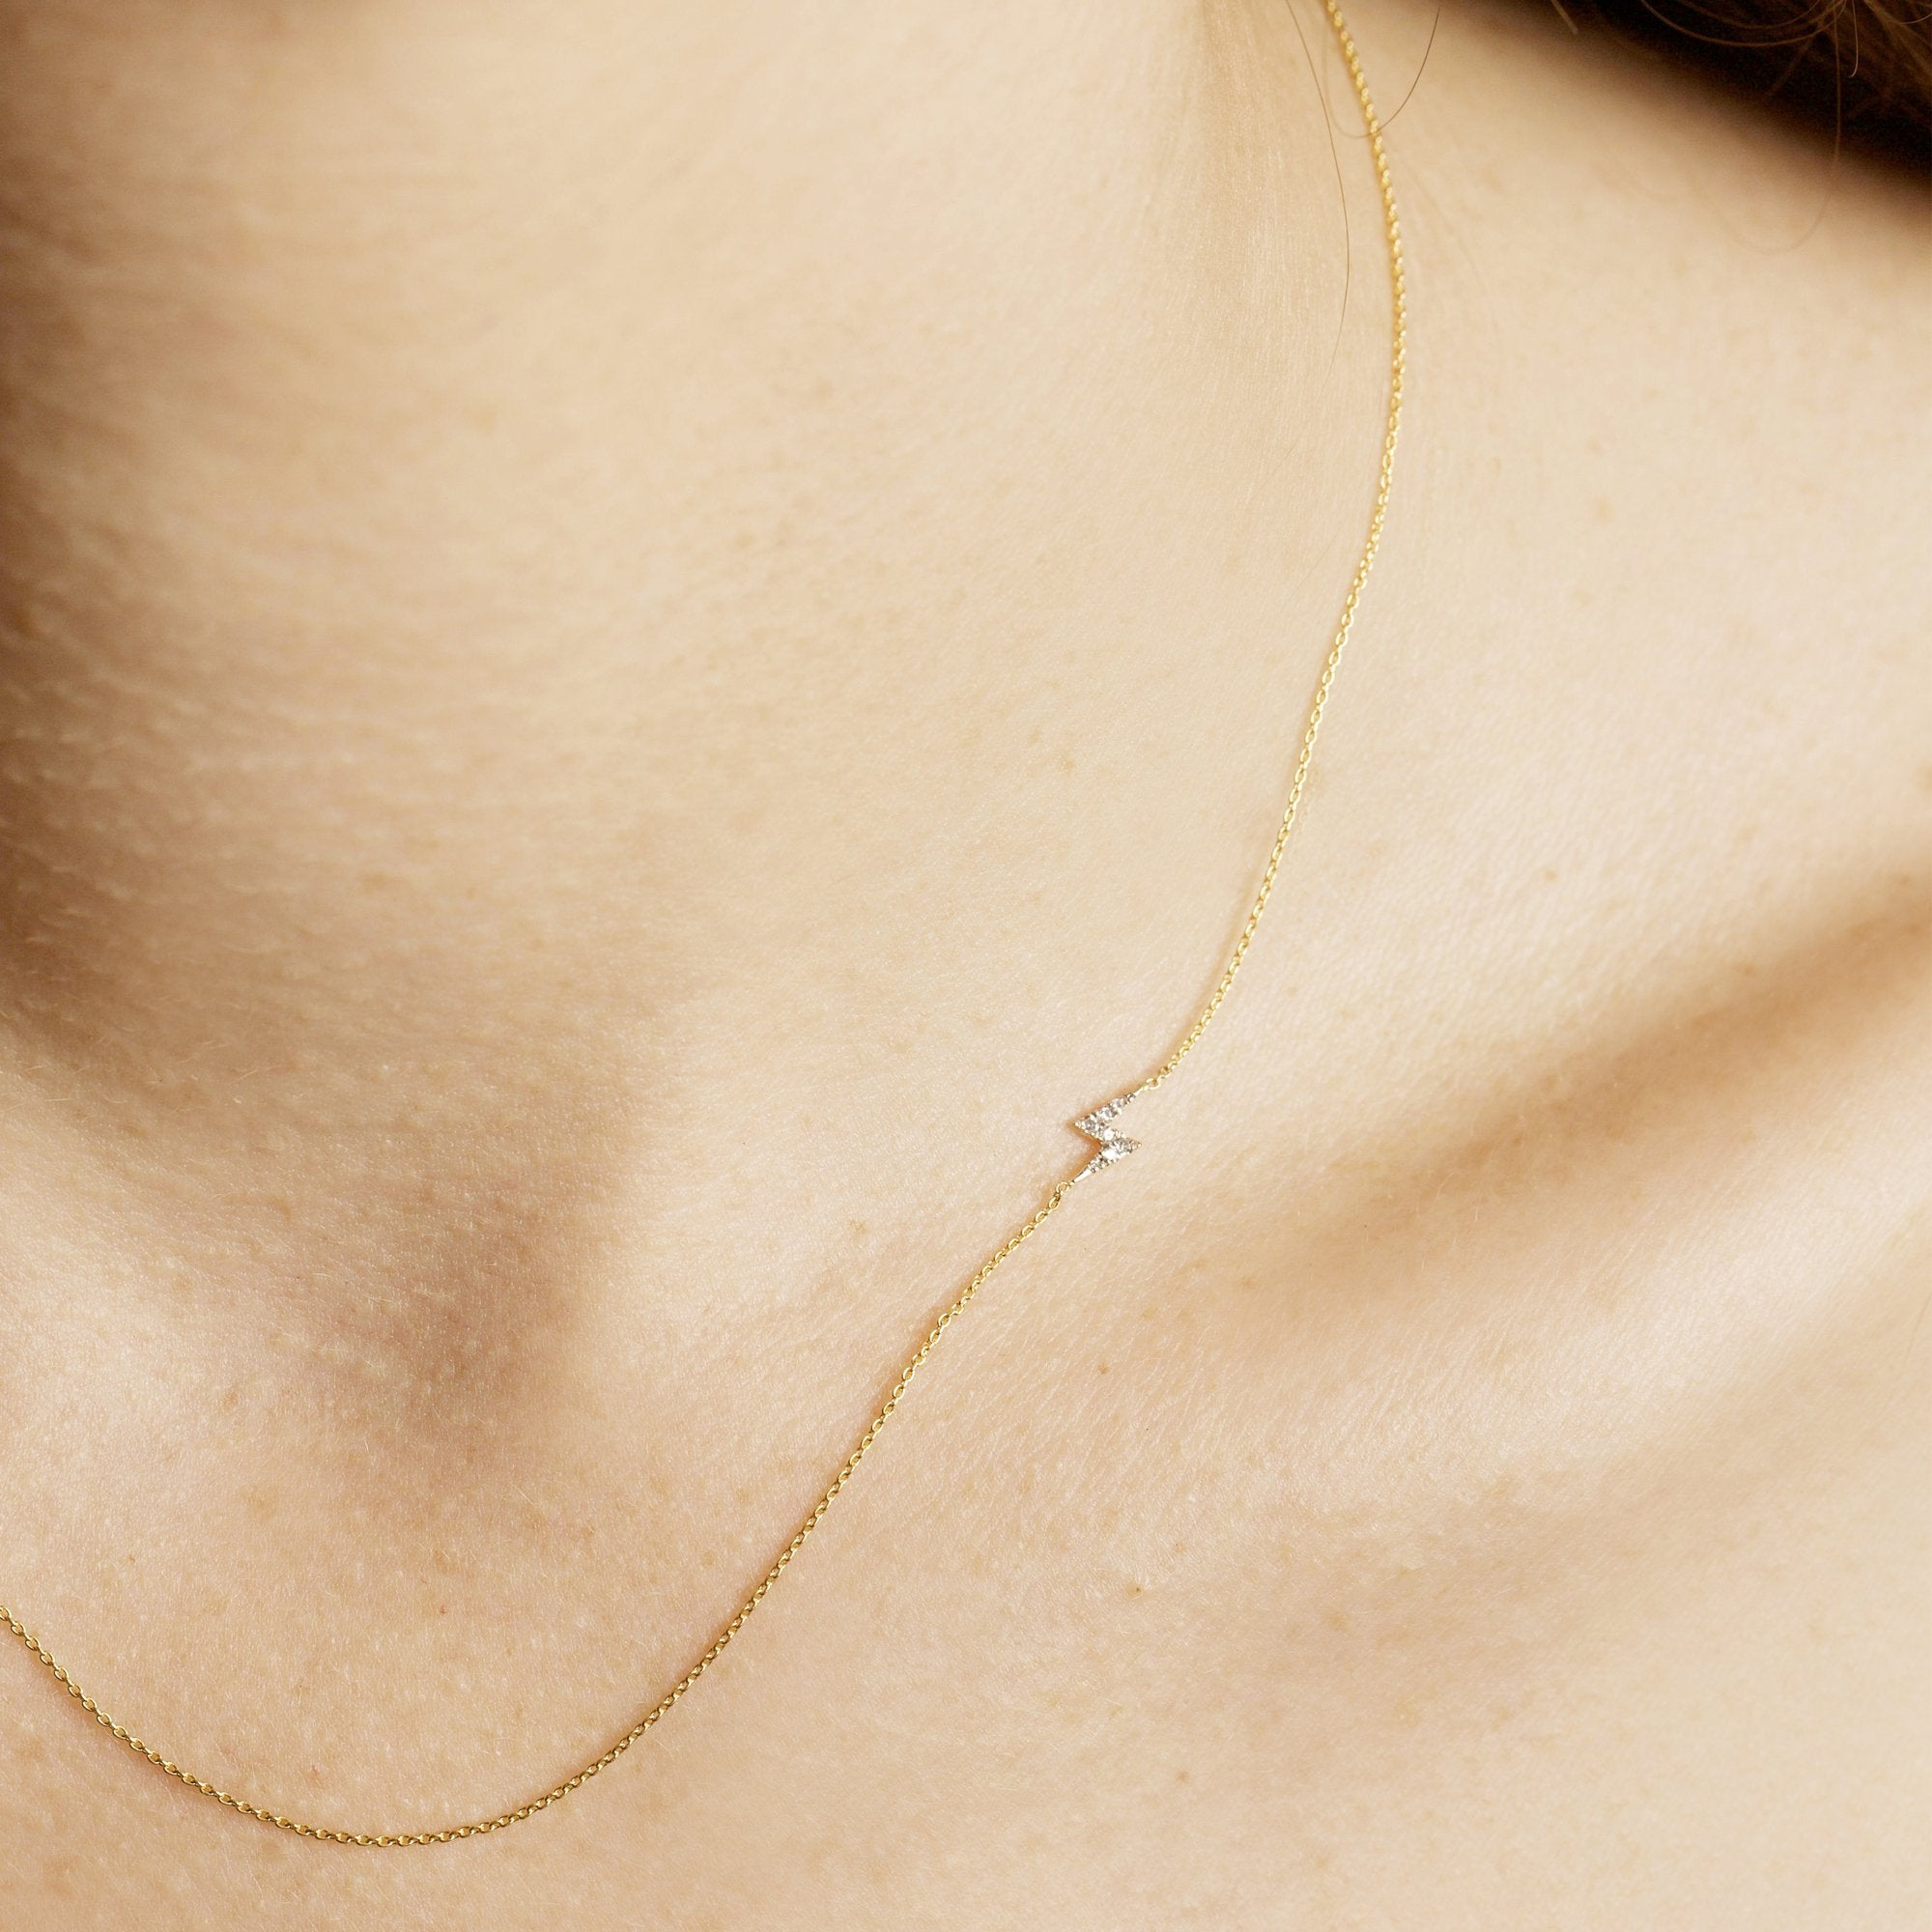 Asymmetric Pave Diamond Lightning Bolt Necklace